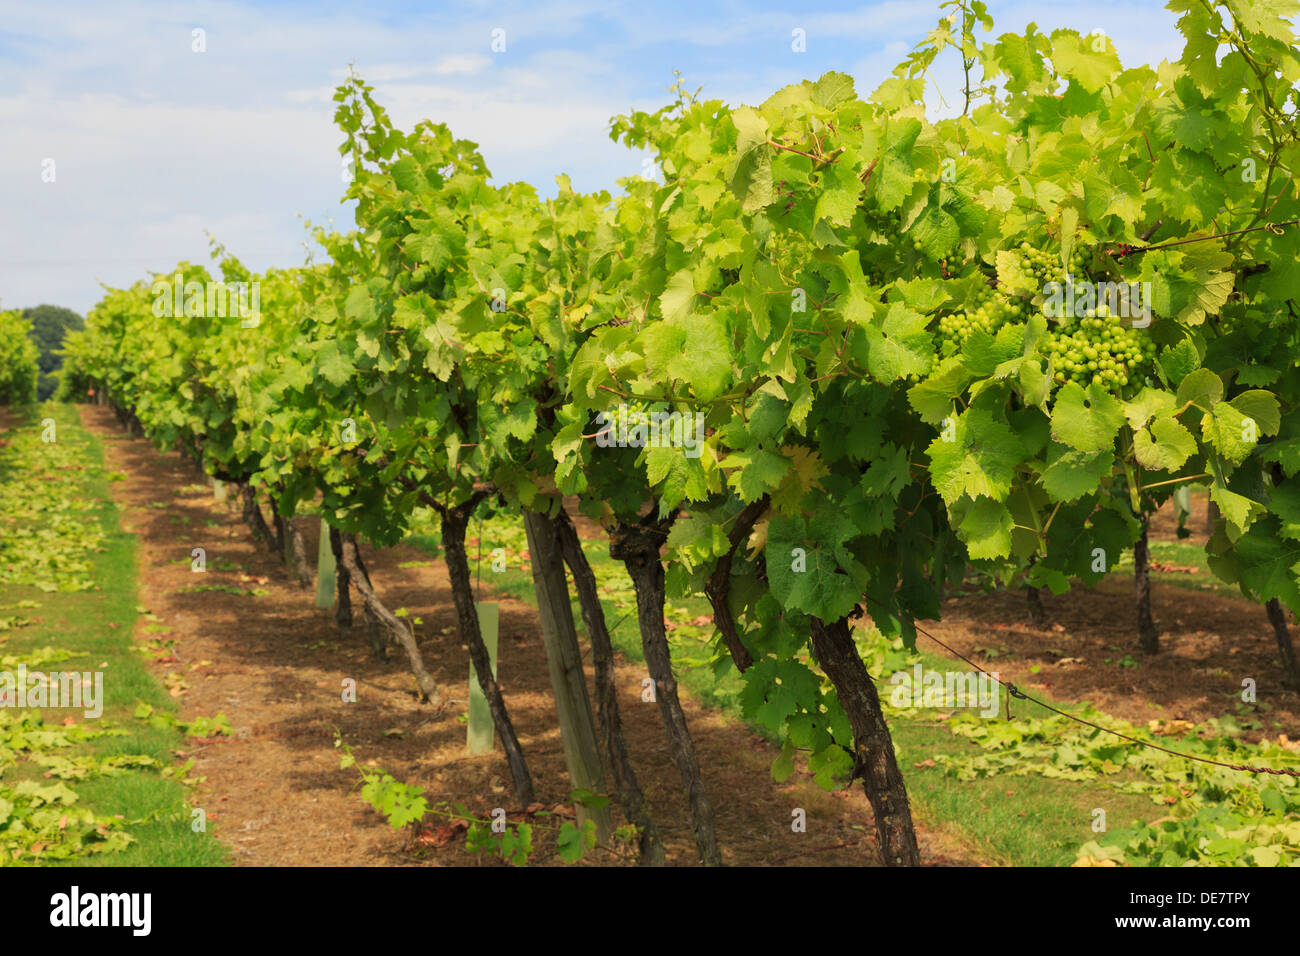 Rows of vines with ripening bunches of white grapes growing on a vineyard in late summer season at Biddenden Kent England UK Britain - Stock Image